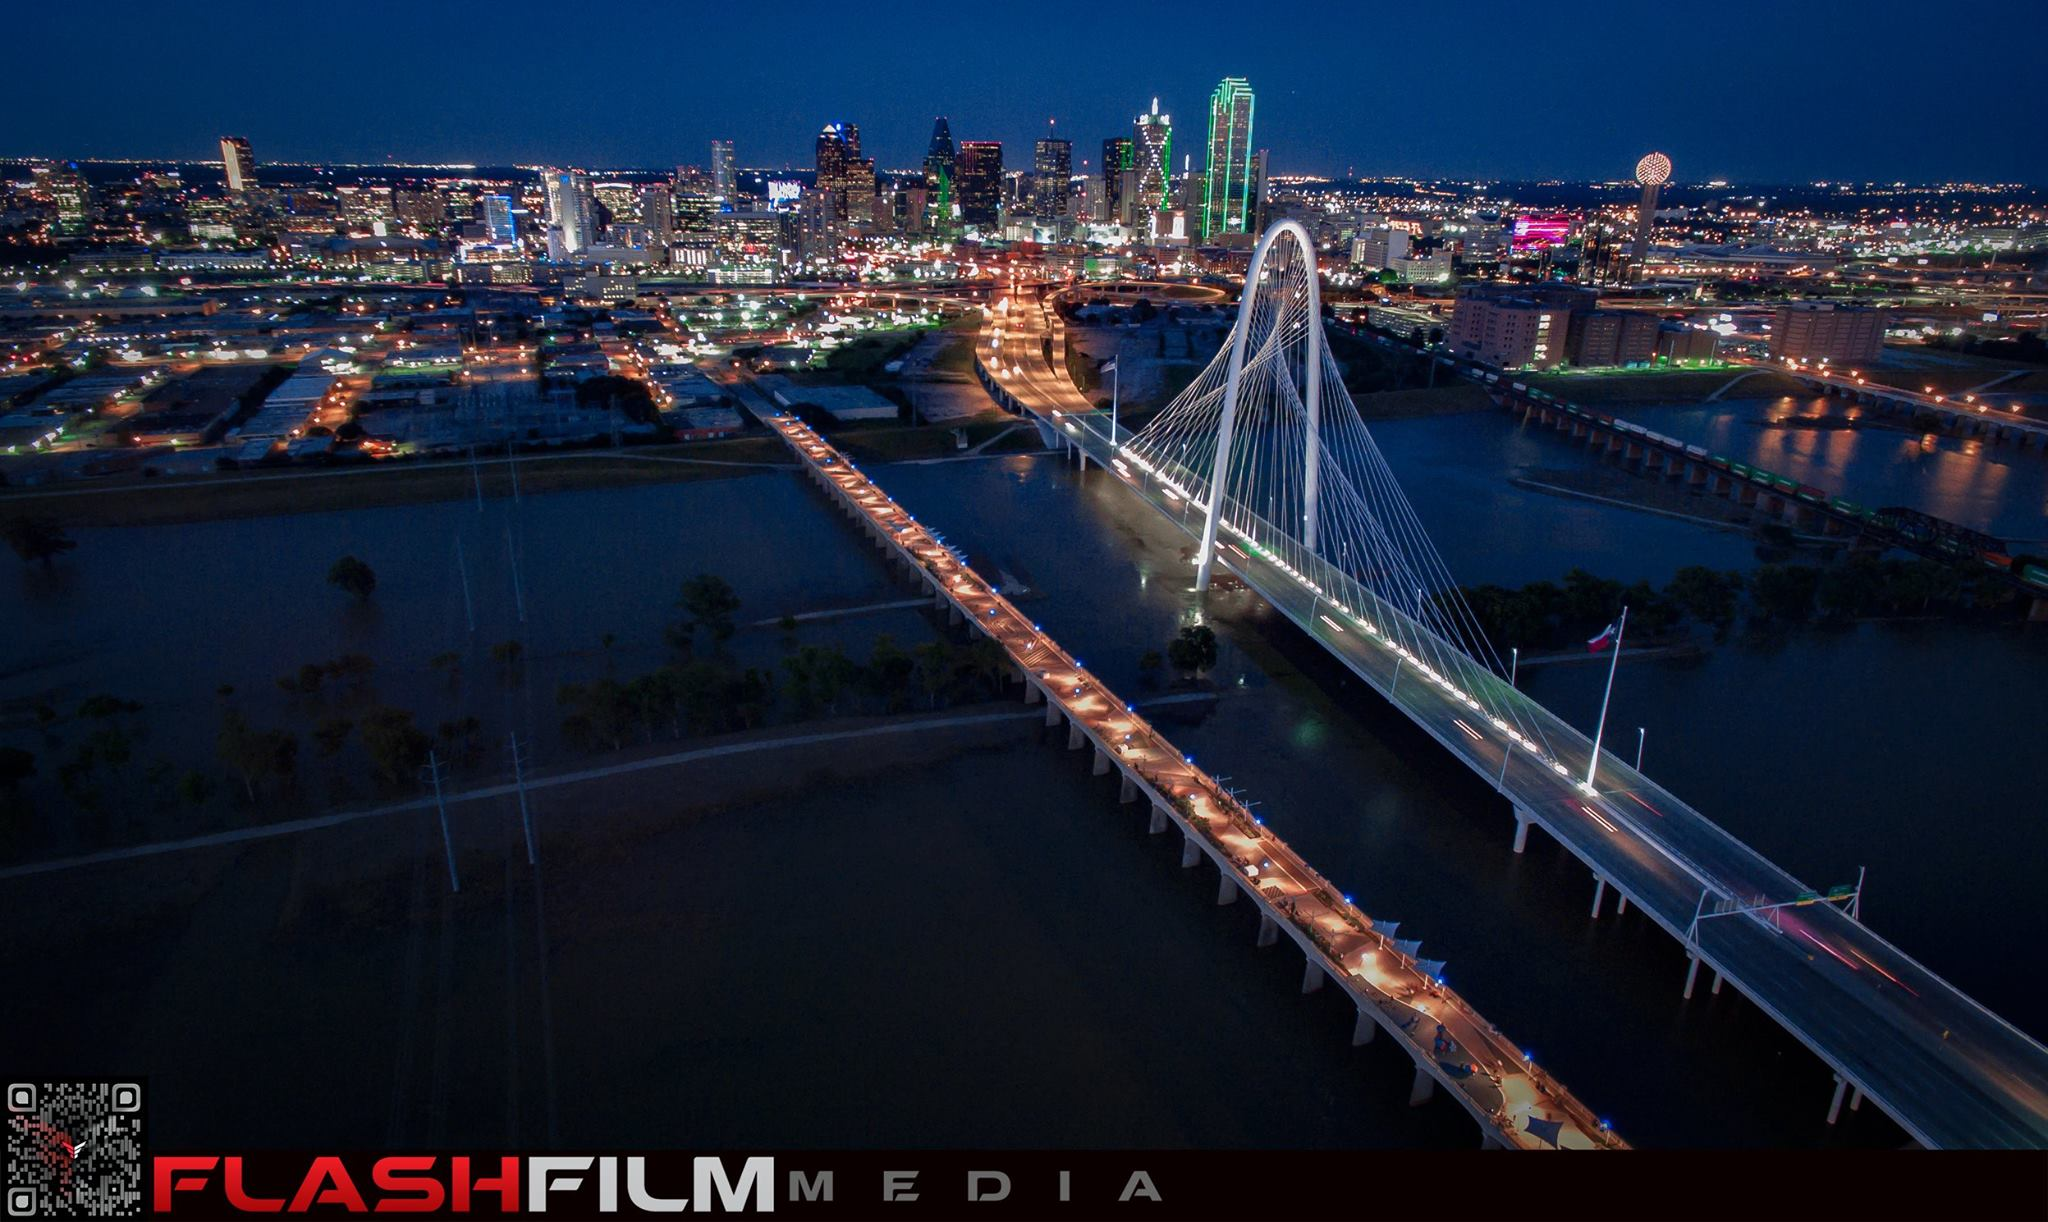 Landscape Photography from FlashFilm Media in Dallas/Fort Worth